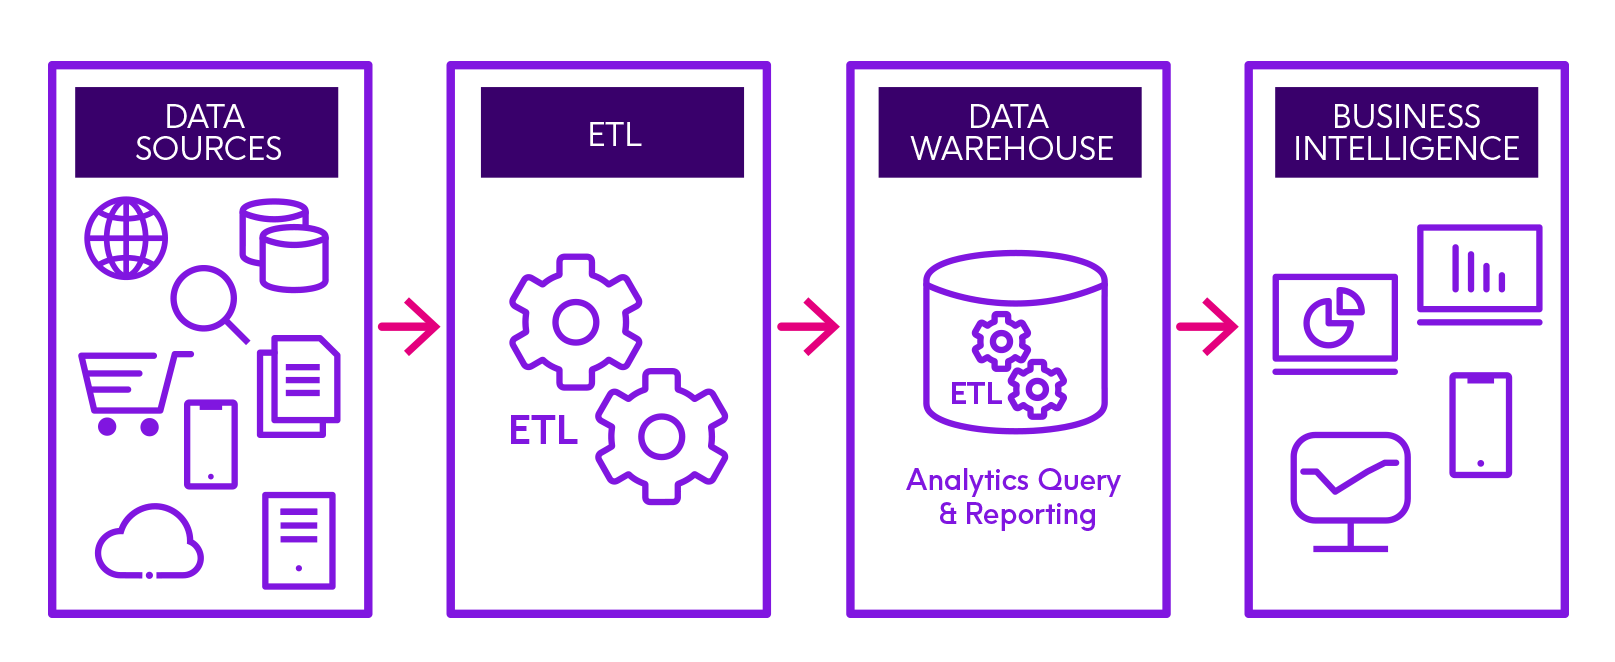 ETL is an important step in the data integration process